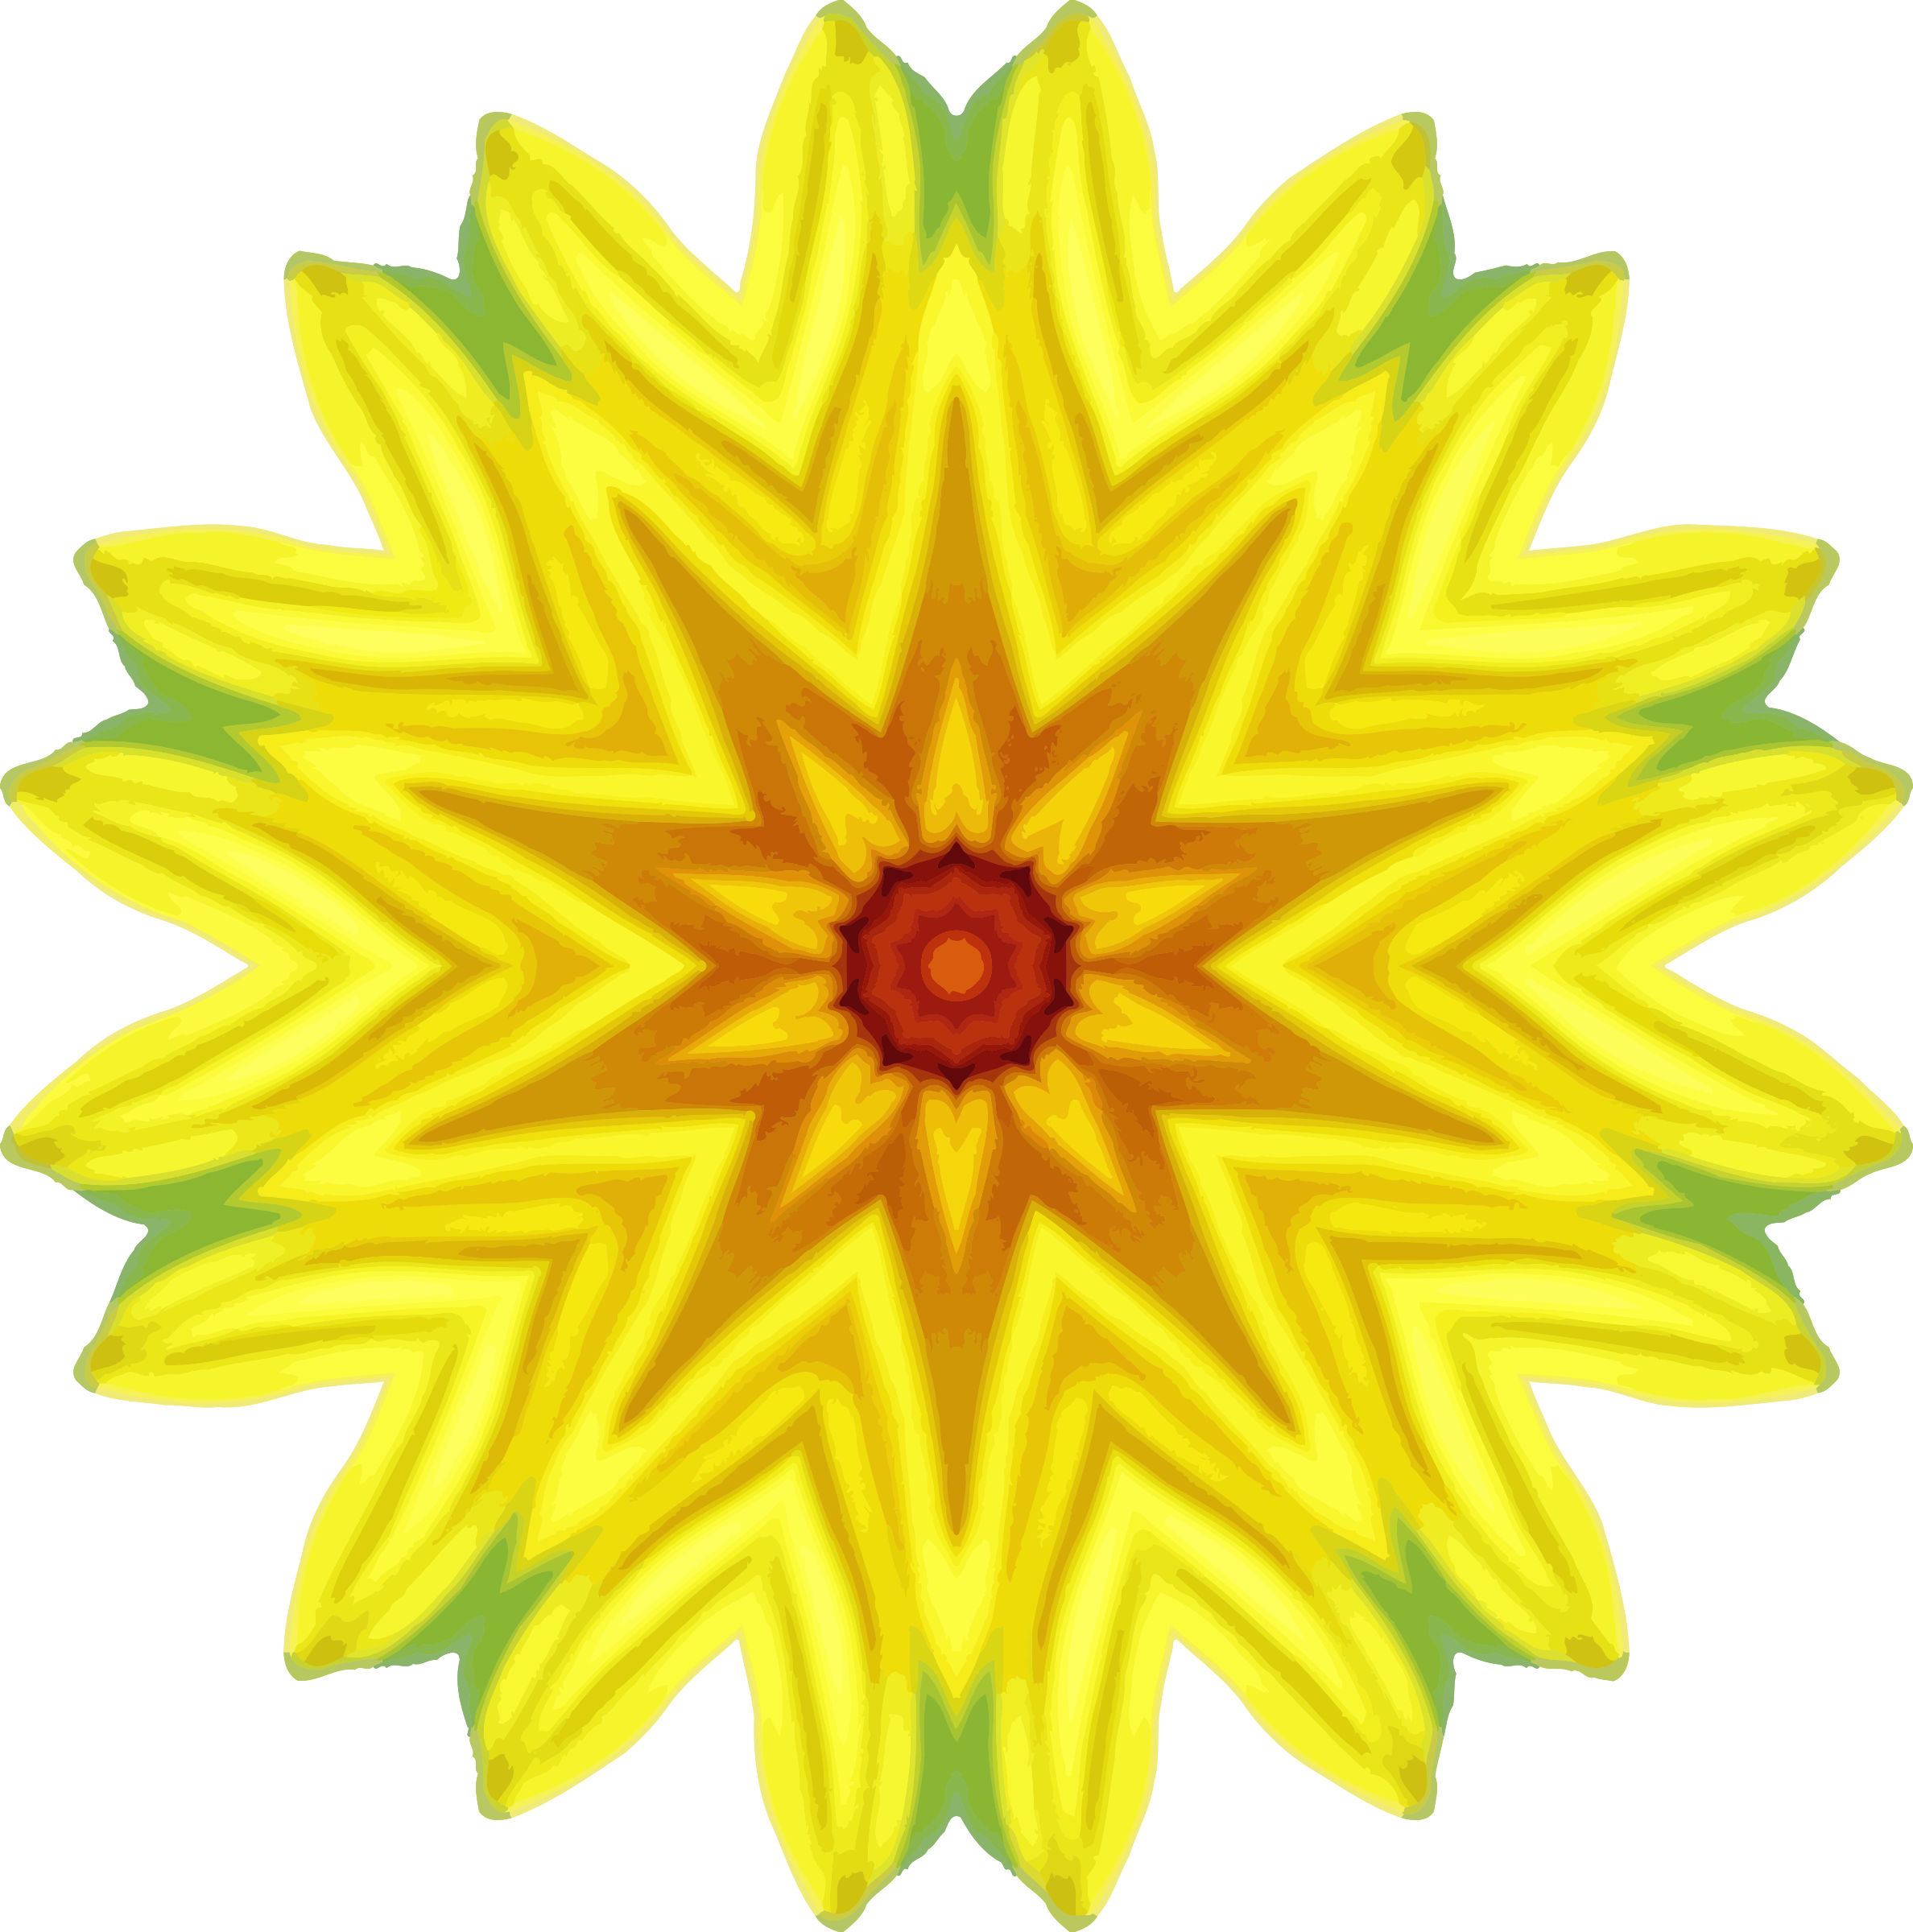 Sunflower kaleidoscope 13 by Firkin